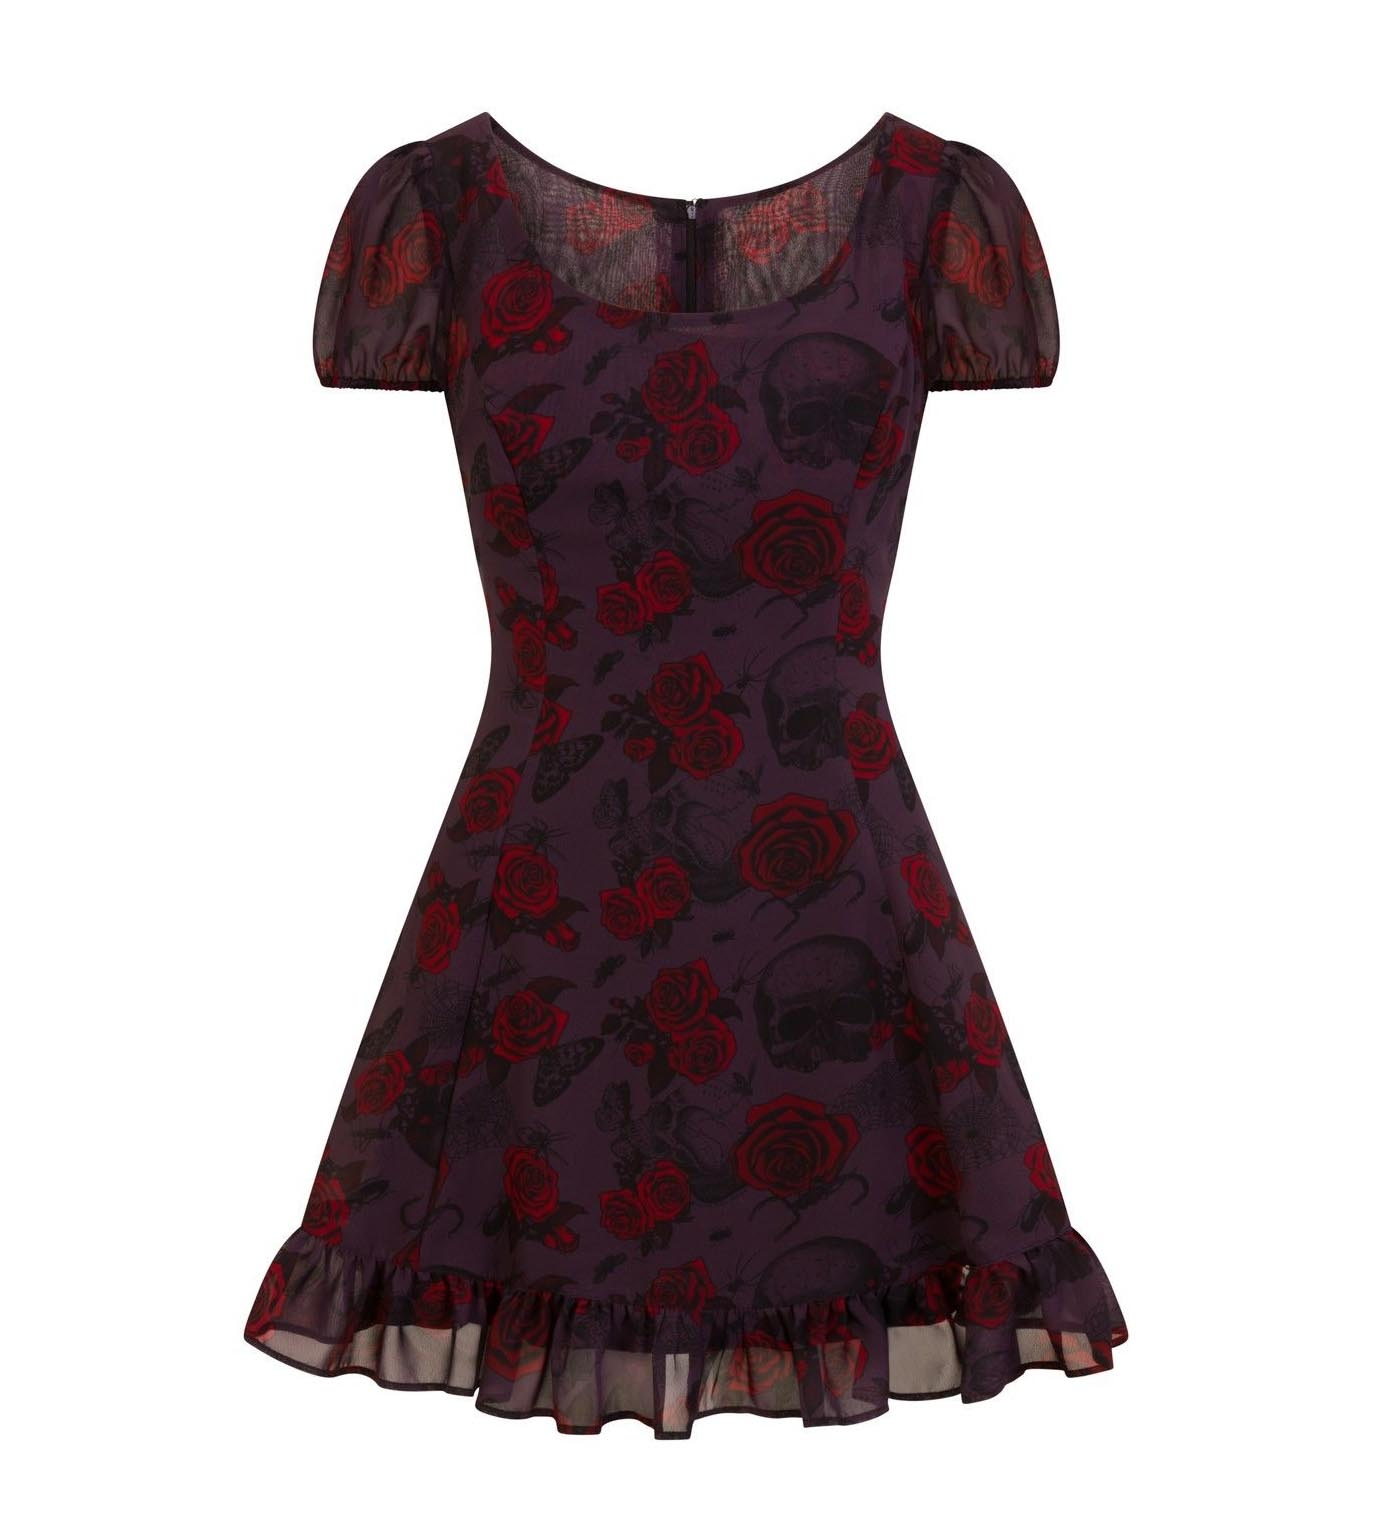 Hell-Bunny-Goth-Floaty-Mini-Dress-BUGS-amp-ROSES-Skulls-Butterfly-Purple-All-Sizes thumbnail 17